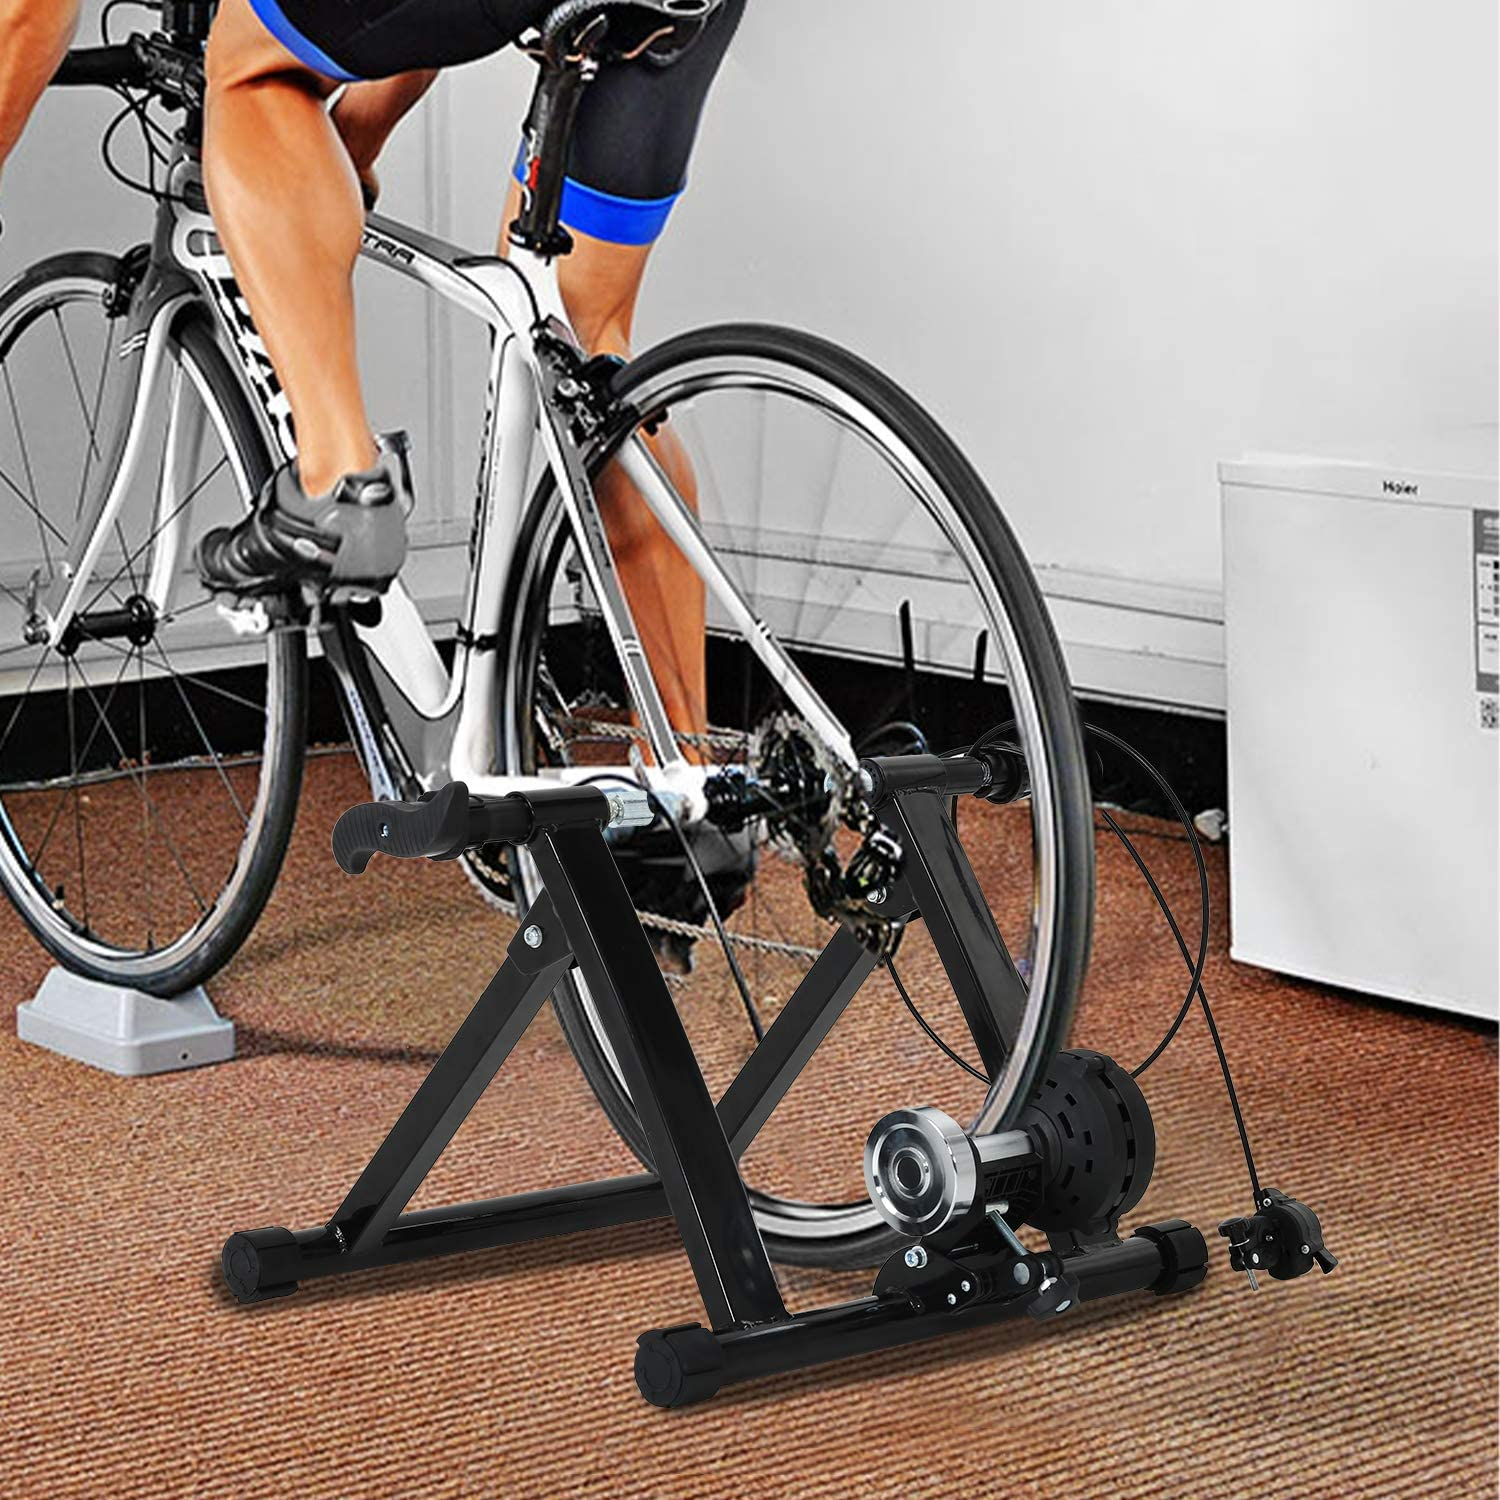 FDW Bike Trainer Stand Bicycle Trainers Road Bike Trainer for Indoor Riding Magnetic Bike Trainer with 5 Levels Resistance